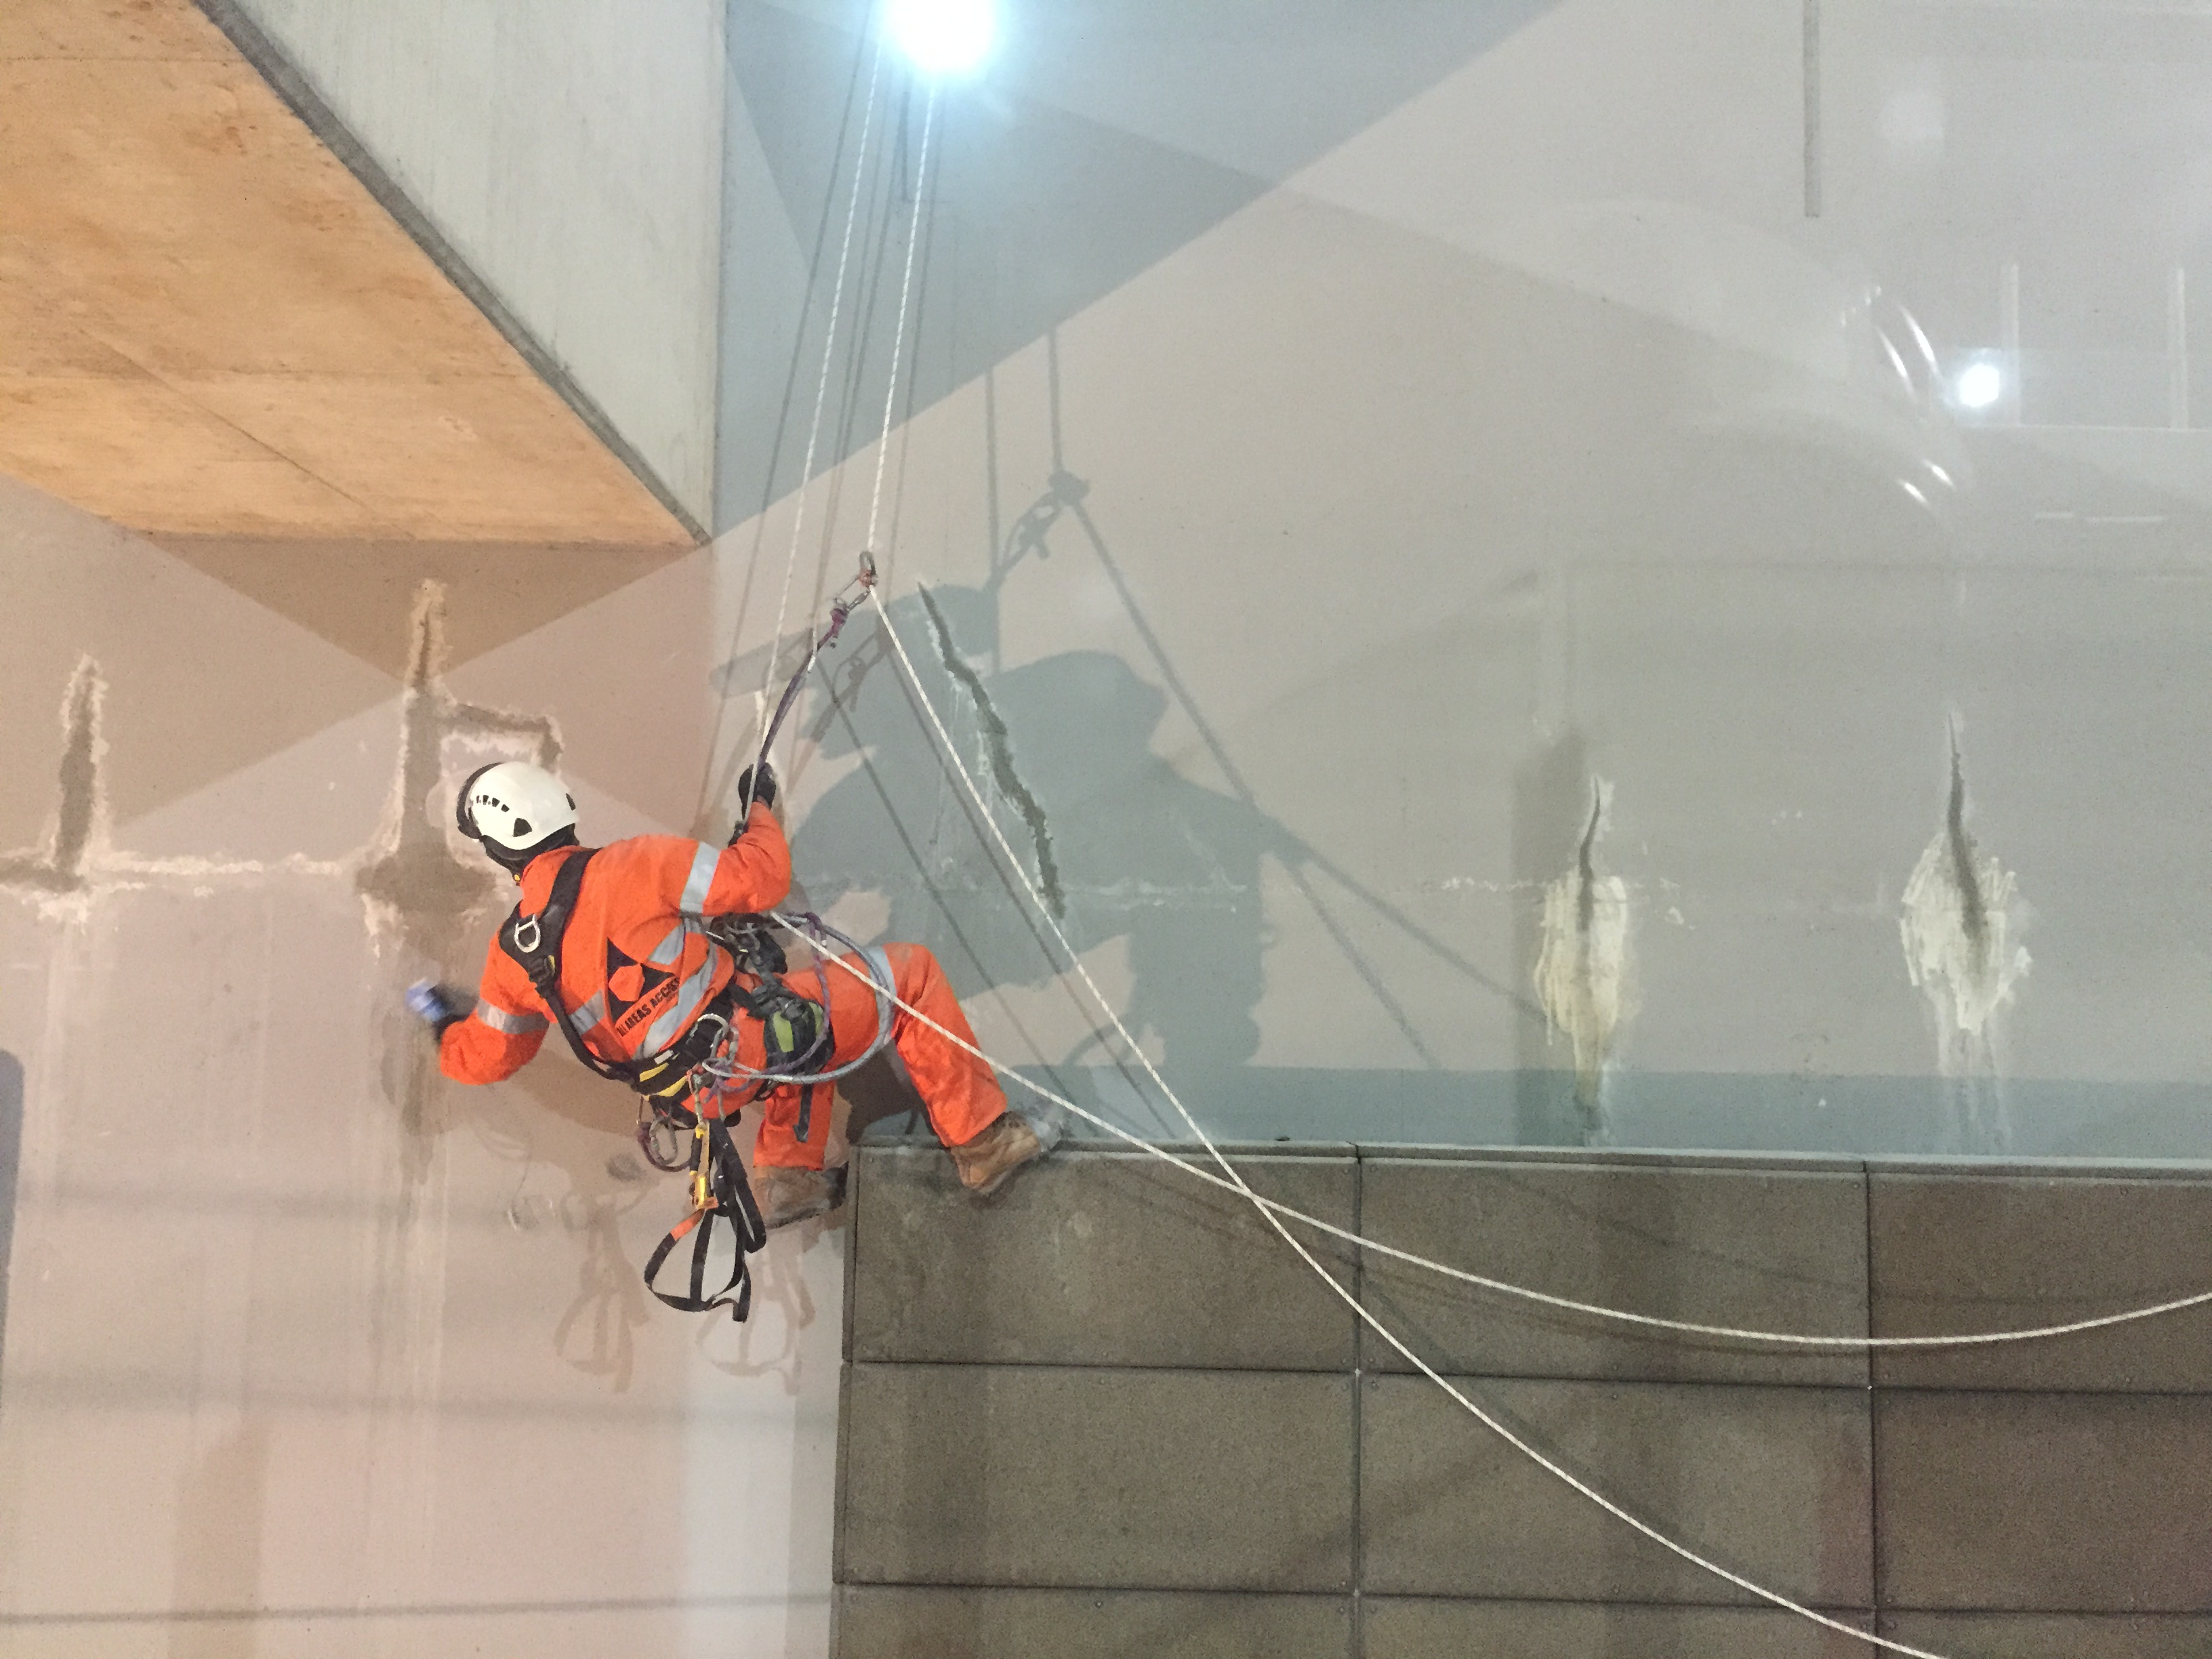 IRATA ROPE ACCESS OPERATIONS